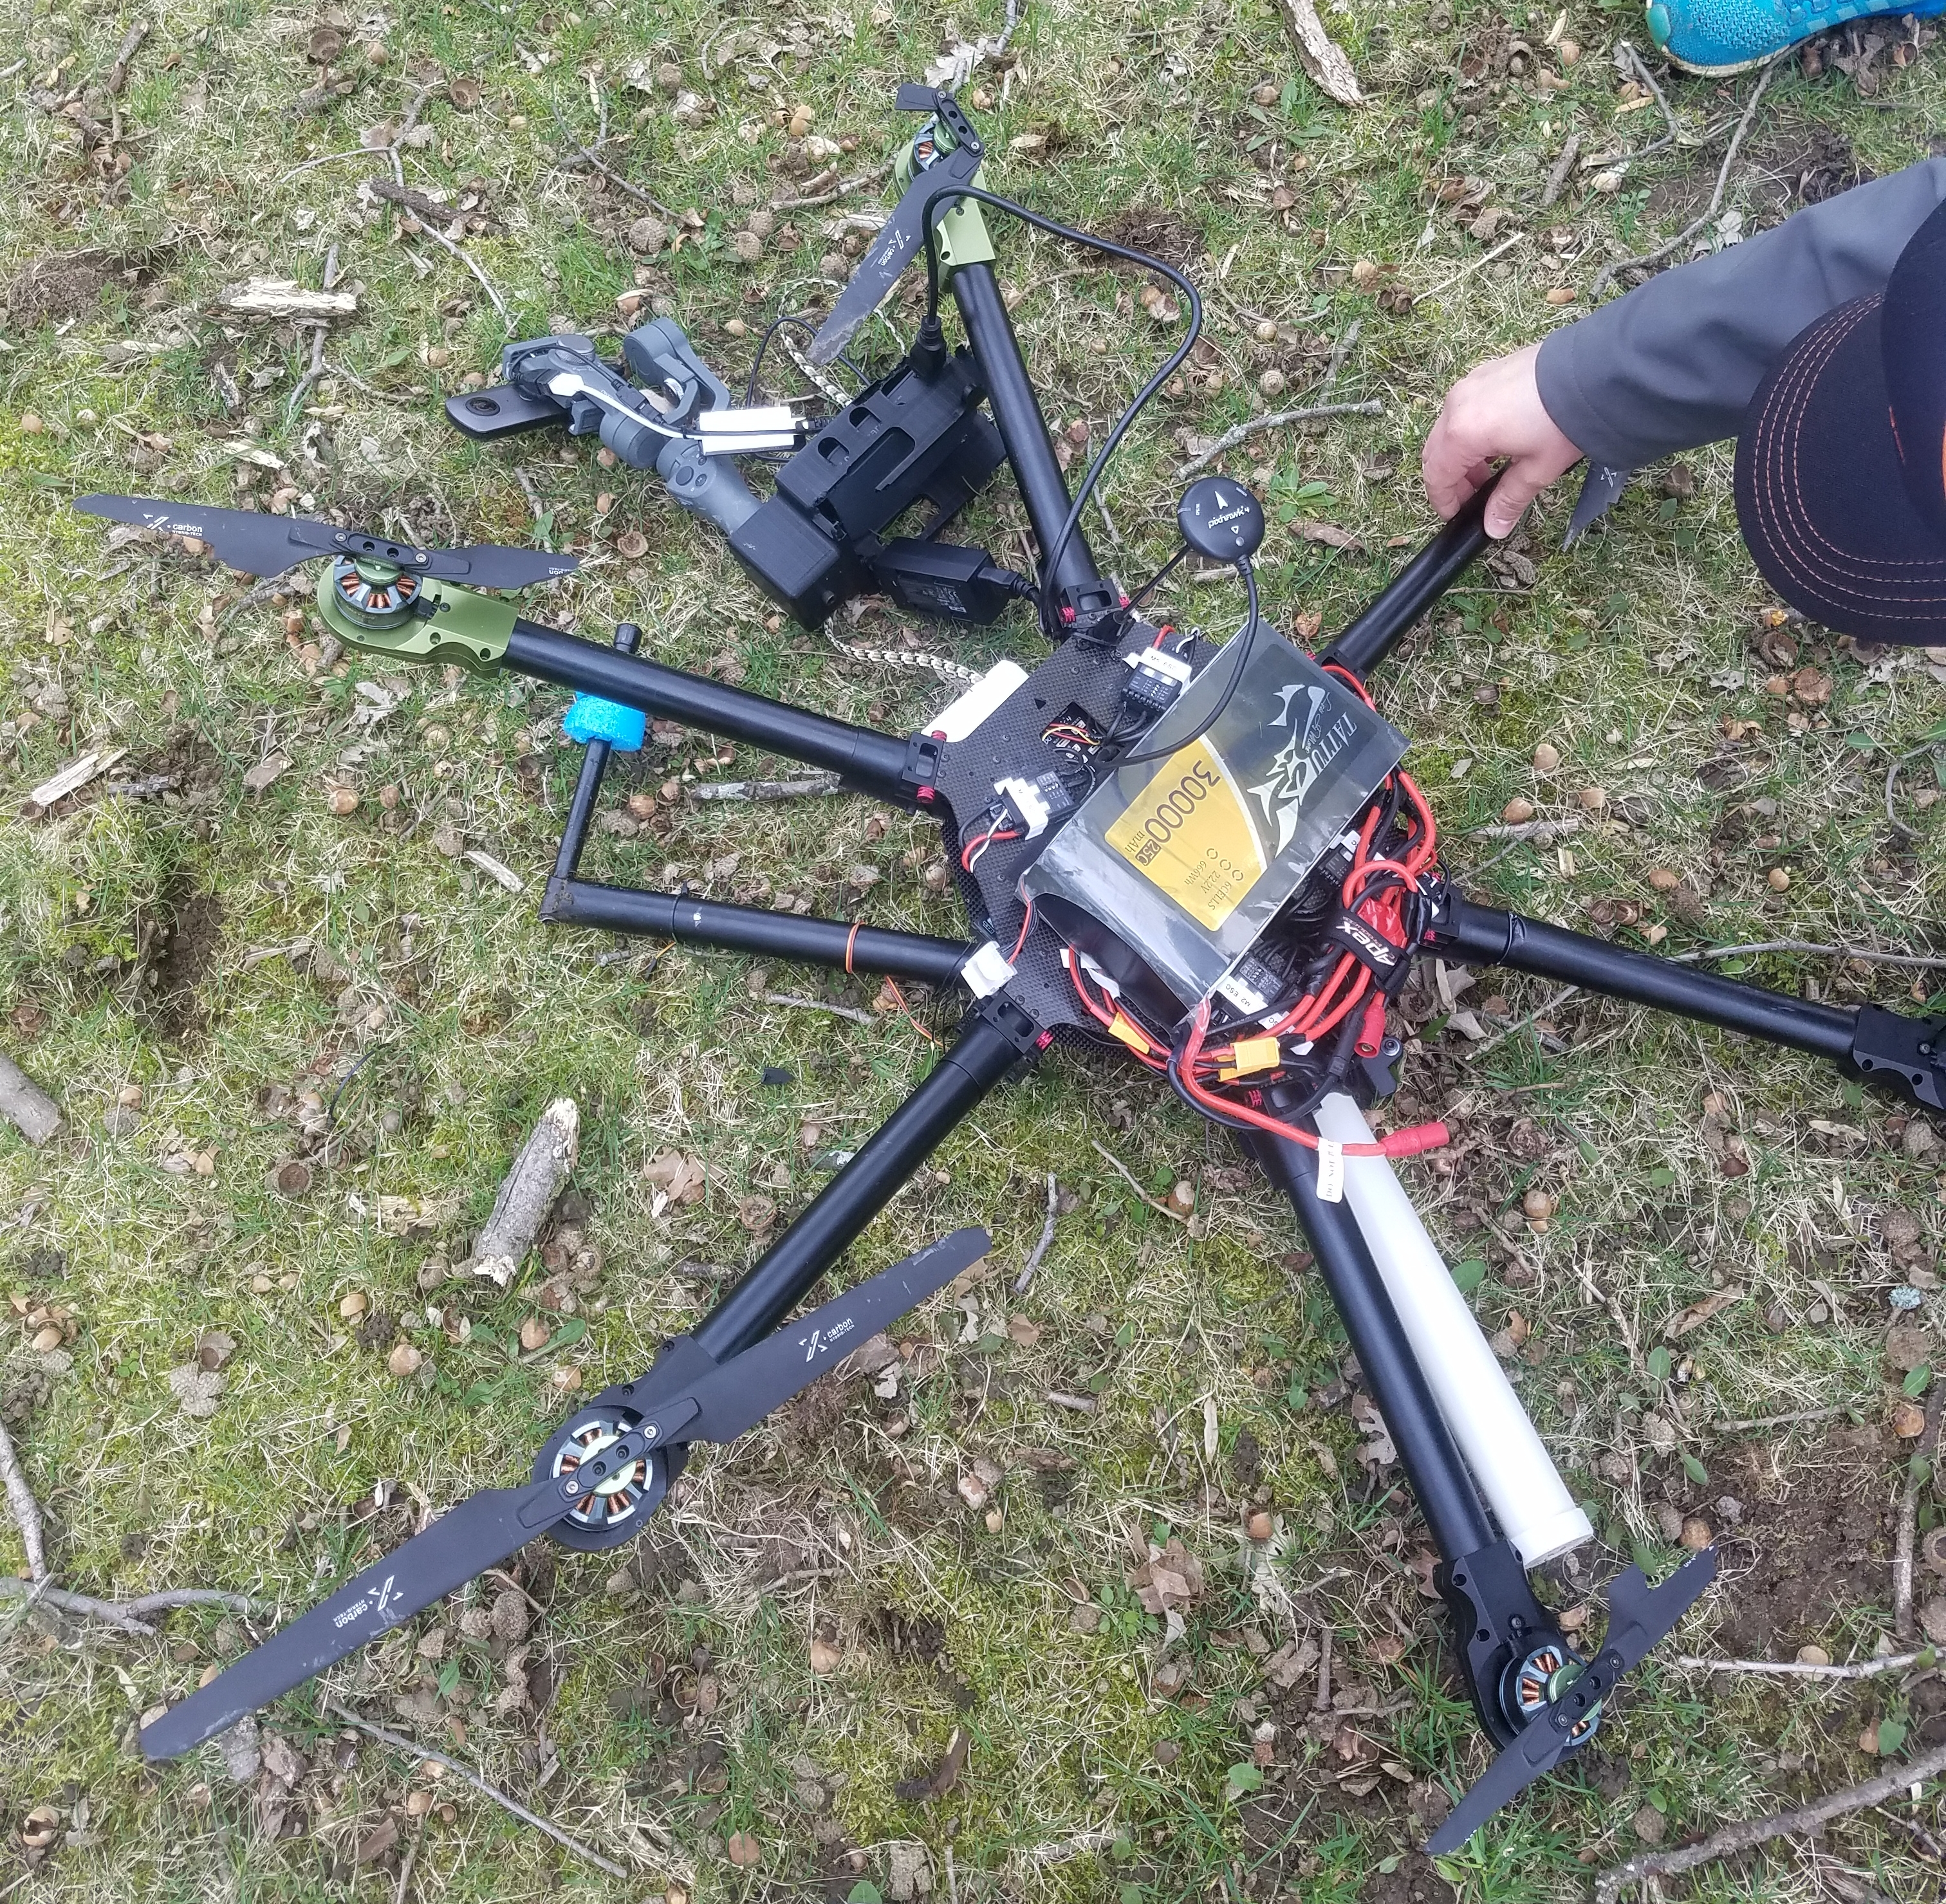 Crashes mount as military flies more drones in U.S. | The